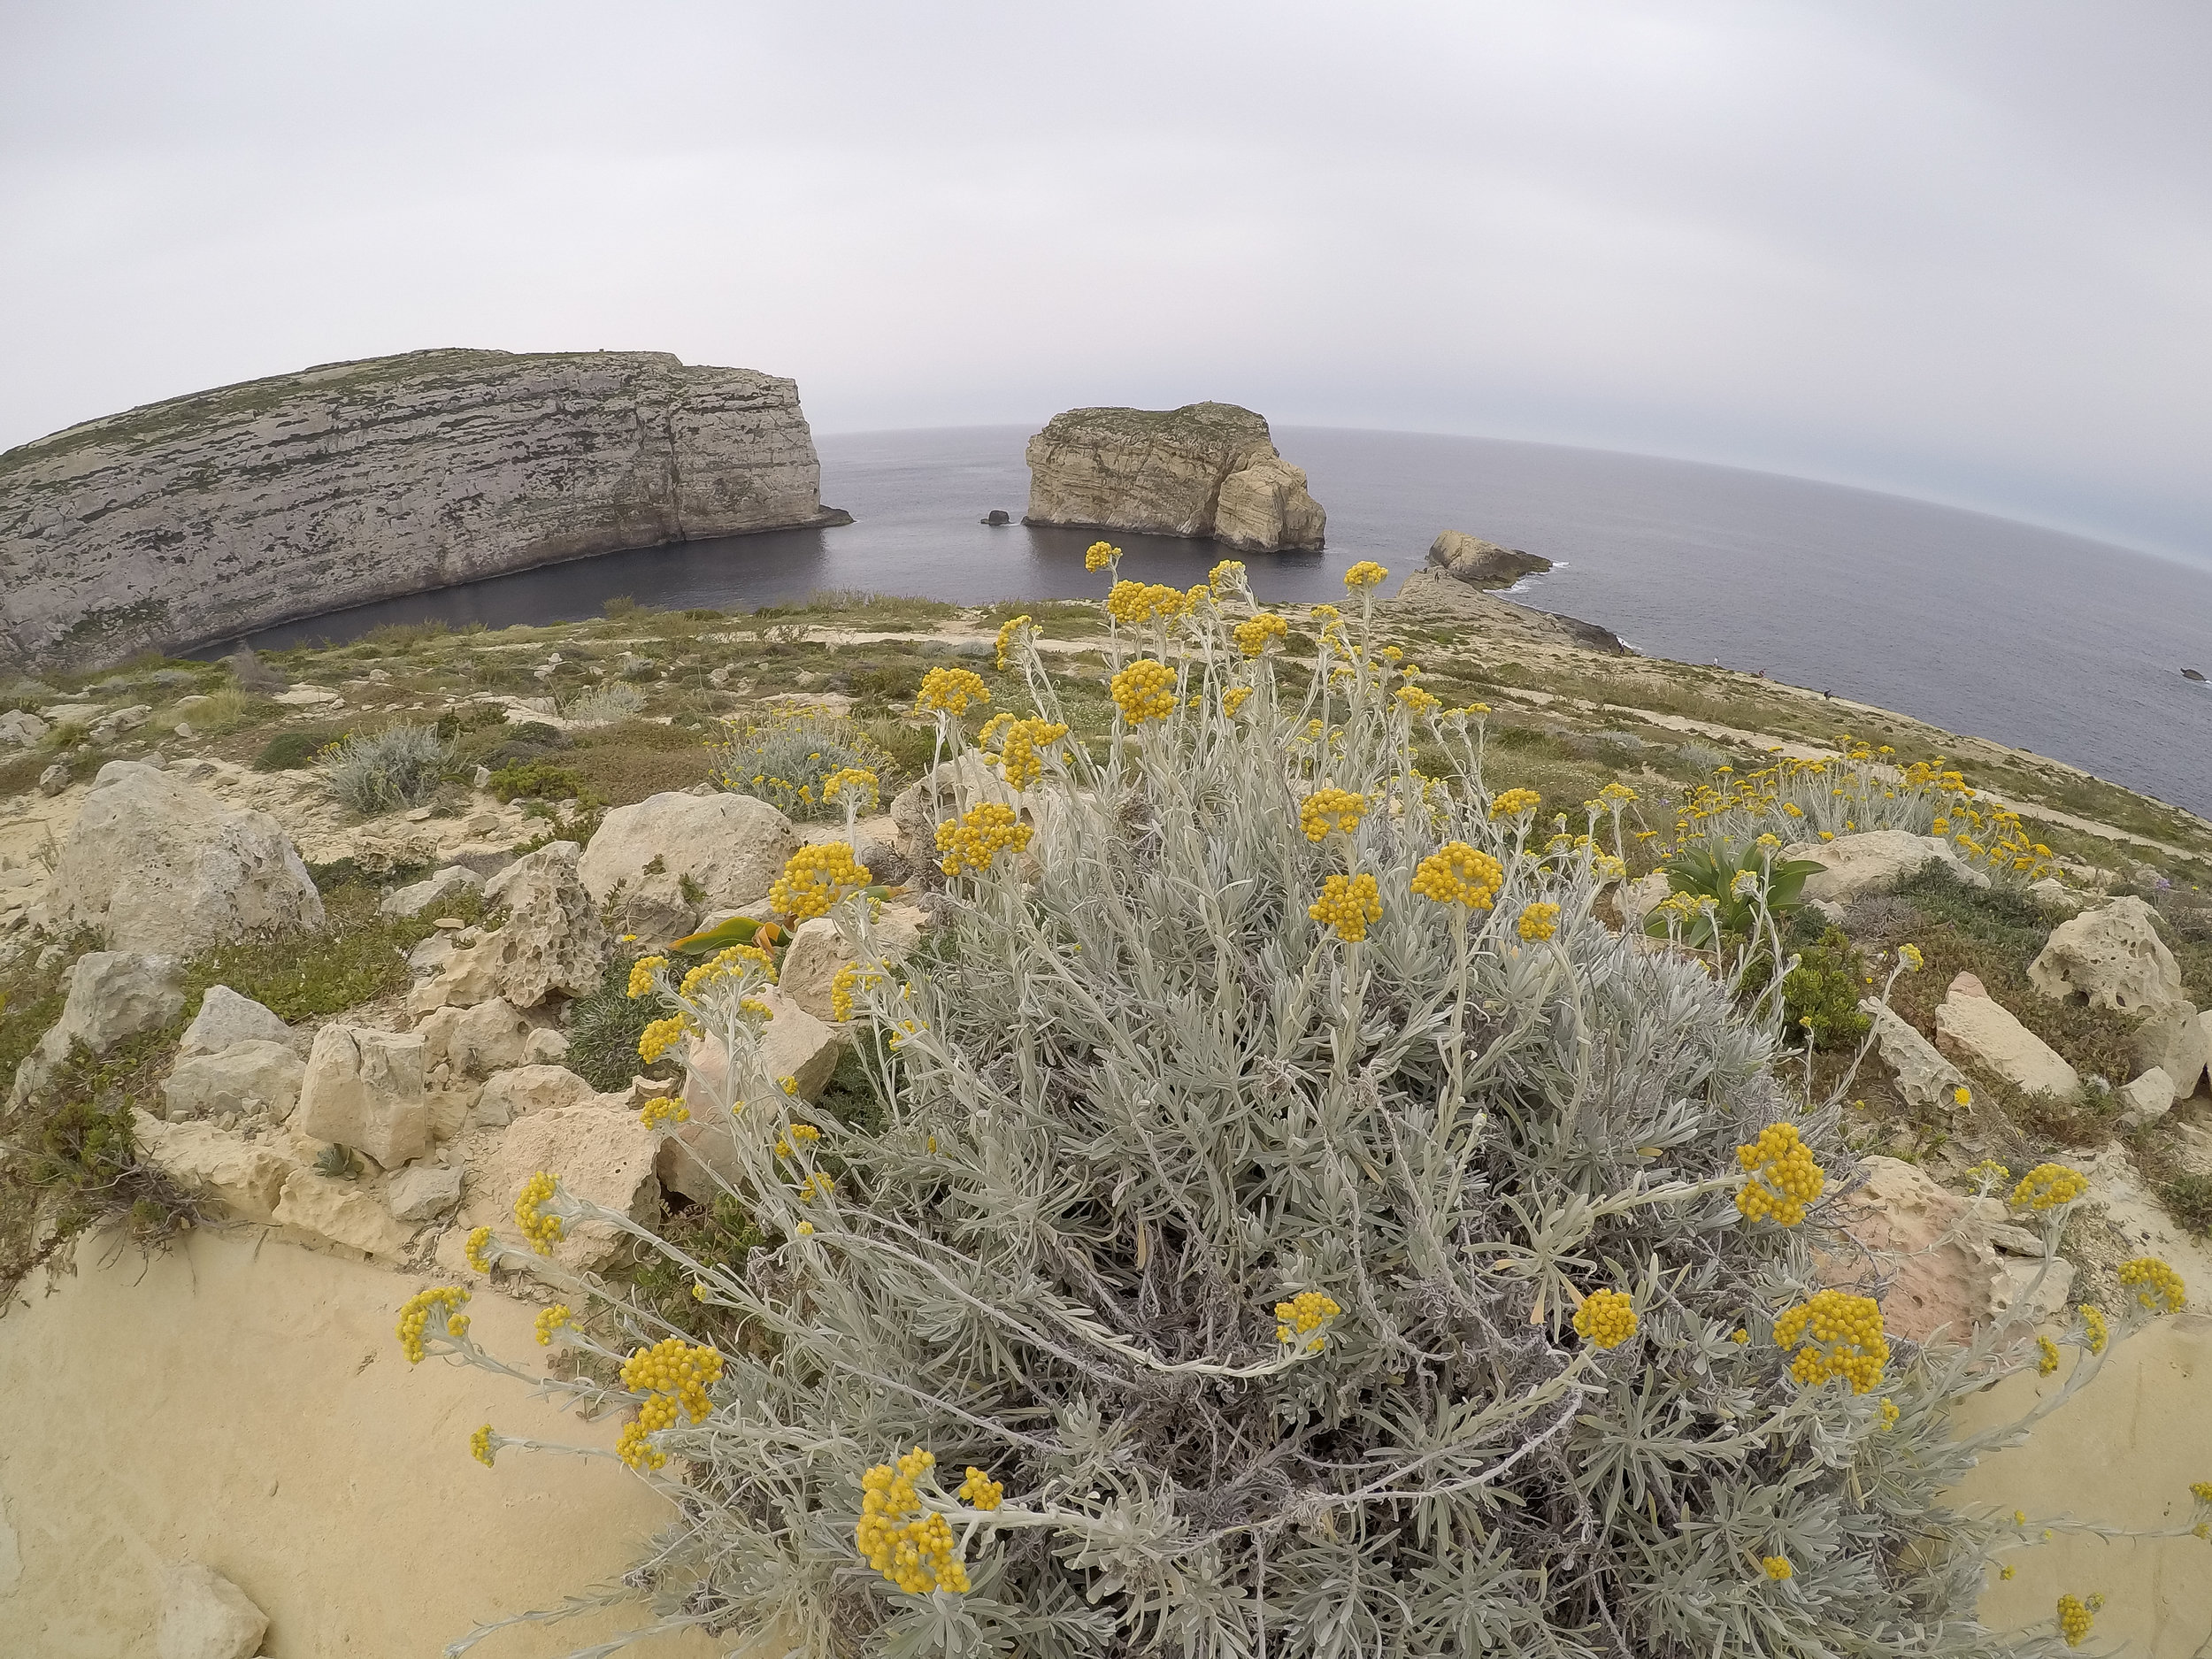 Dwejra Bay | Mediterranean Coast | Nature | LAndscape - Thinking About Appreciation For Quality In Malta | Gozo, Malta, Europe | DoLessGetMoreDone.com | - GoPro Minimal Travel Documentary Photography - search for Liveability | Sustainability